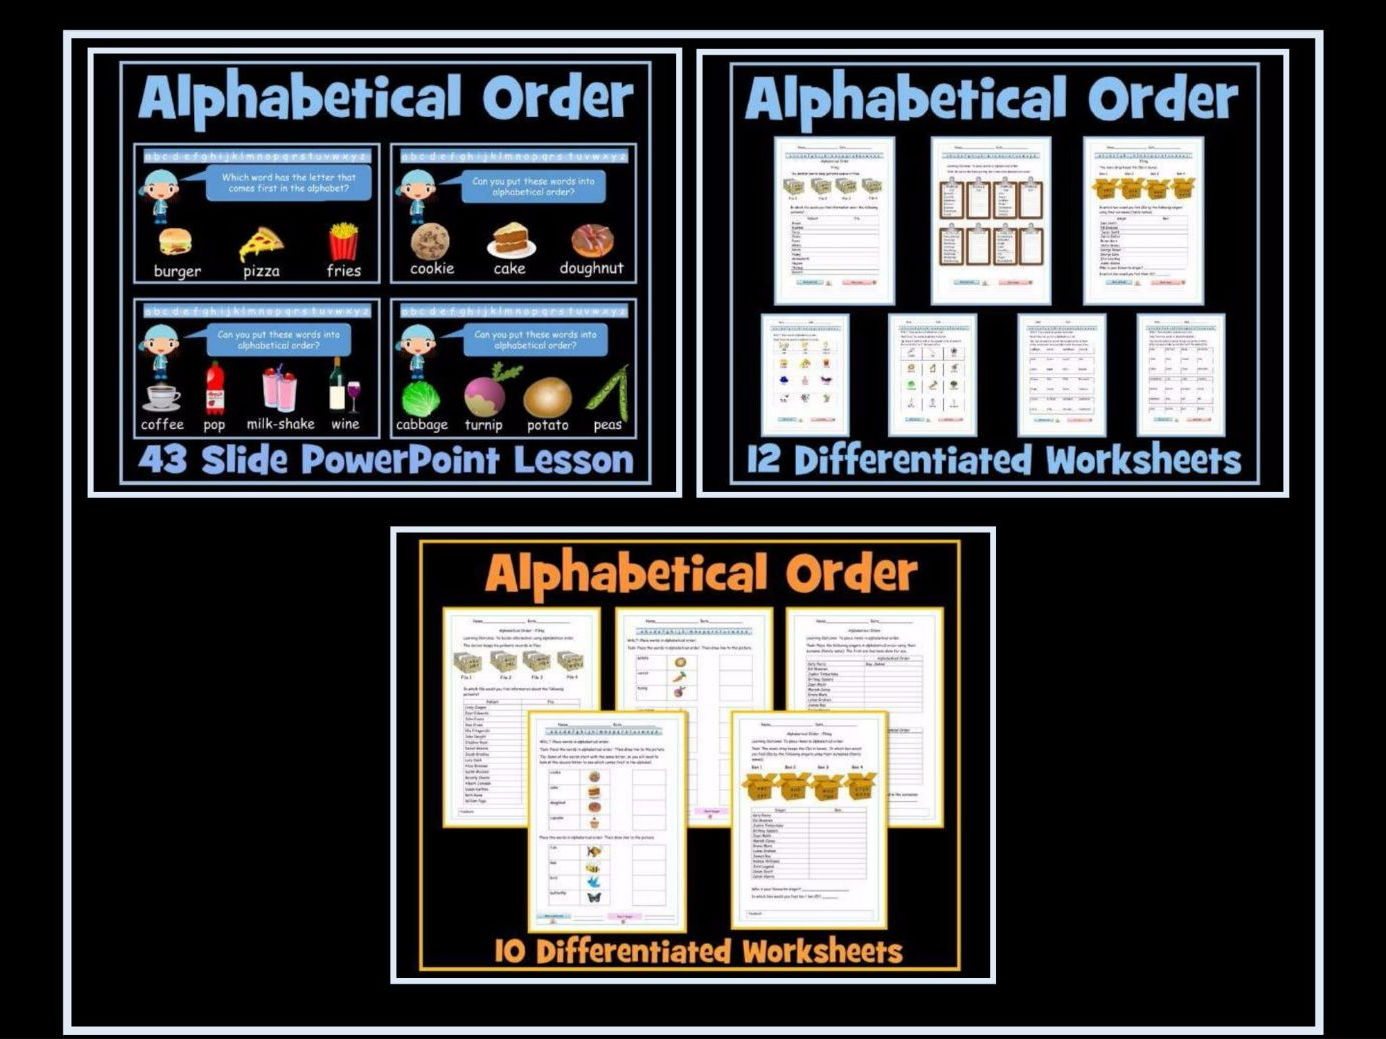 Alphabetical Order - 43 Slide PowerPoint Lesson -  Set of 22 Diffferentiated Worksheets